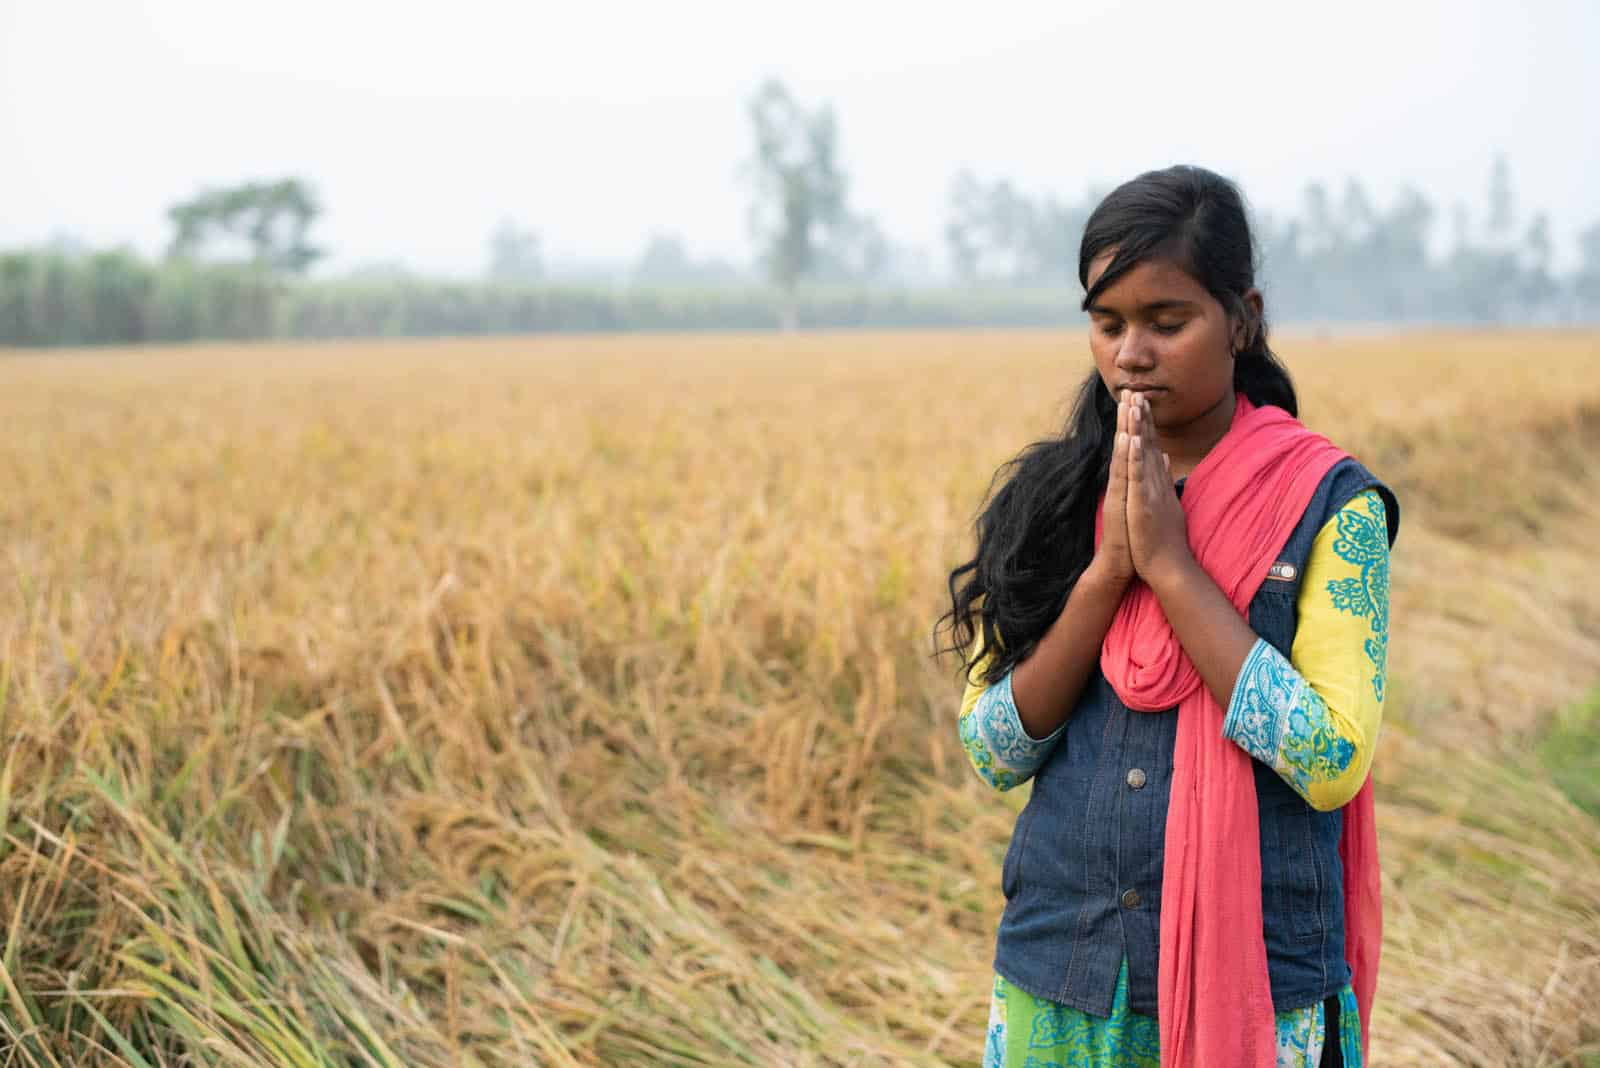 Angela praying in a field